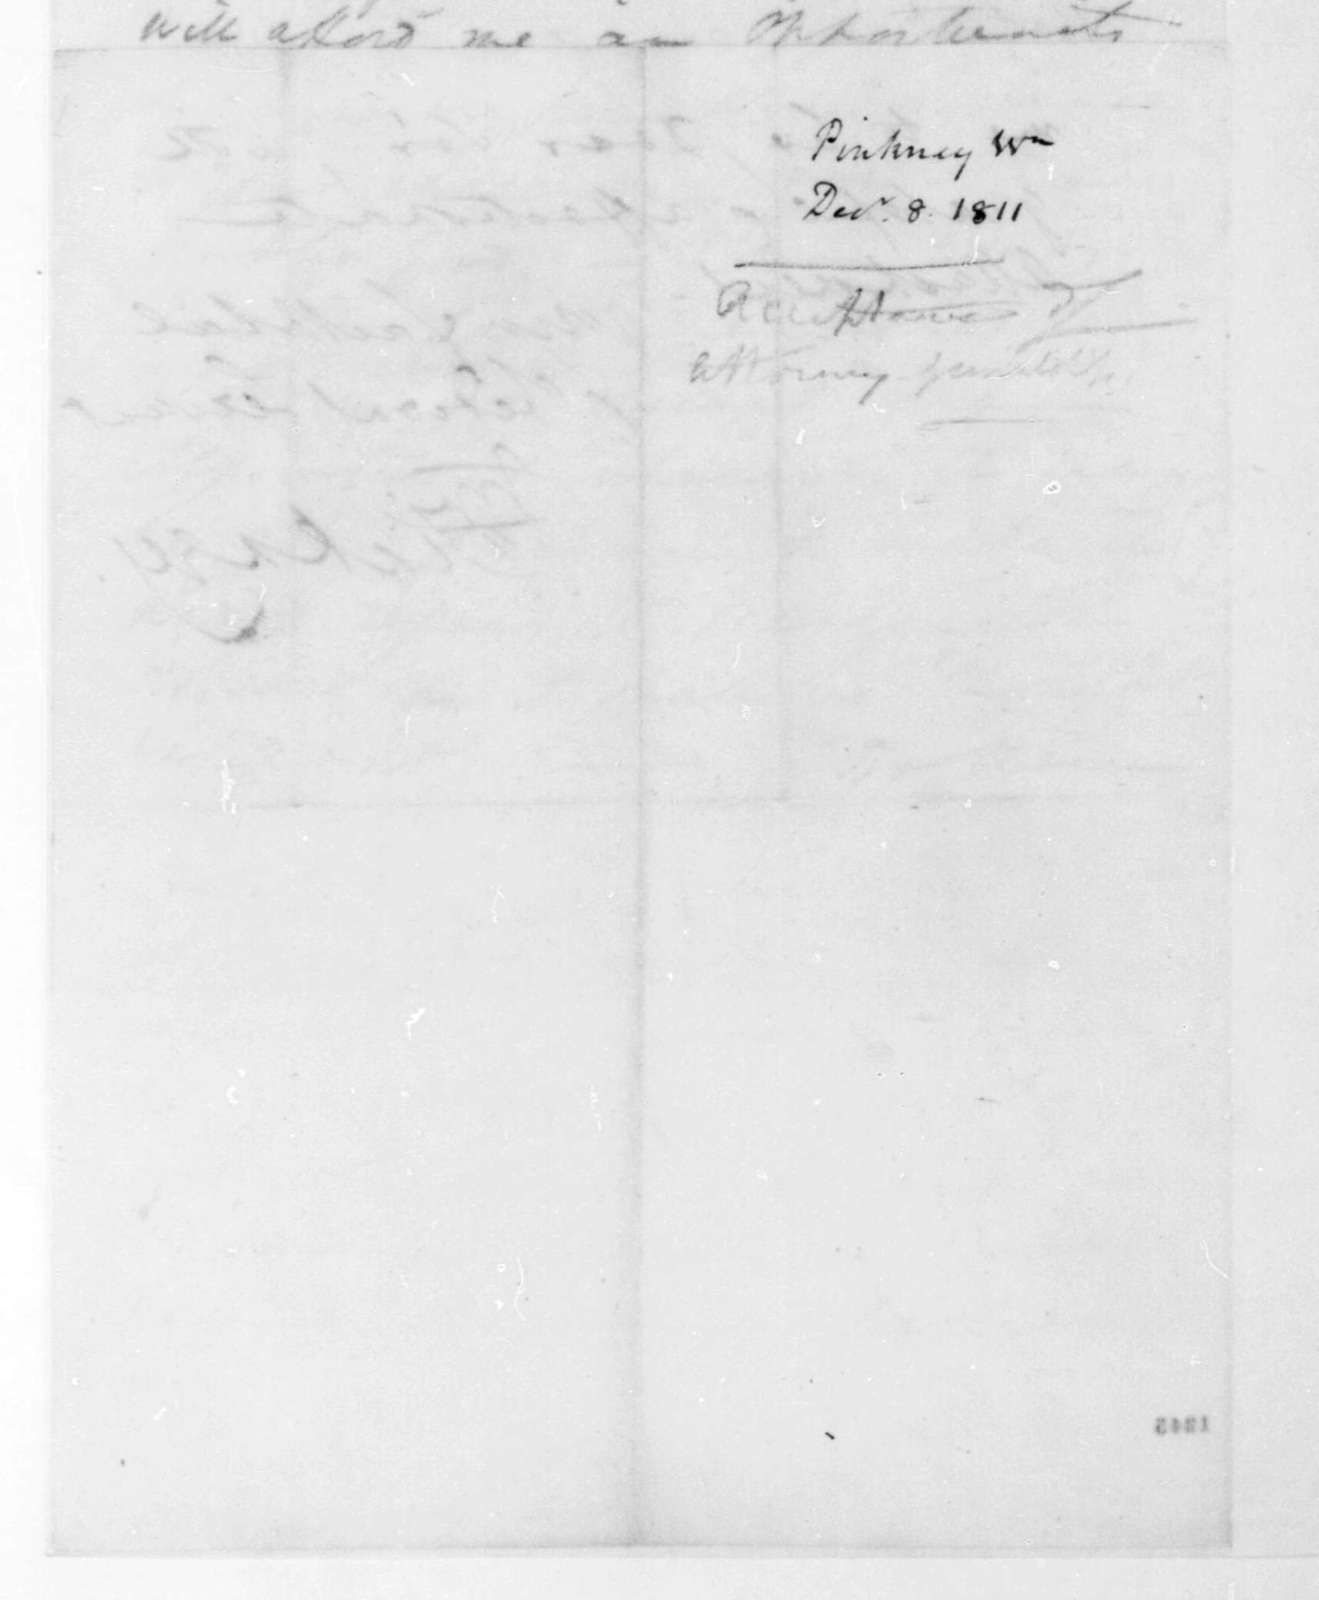 William Pinkney to James Madison, December 8, 1811.